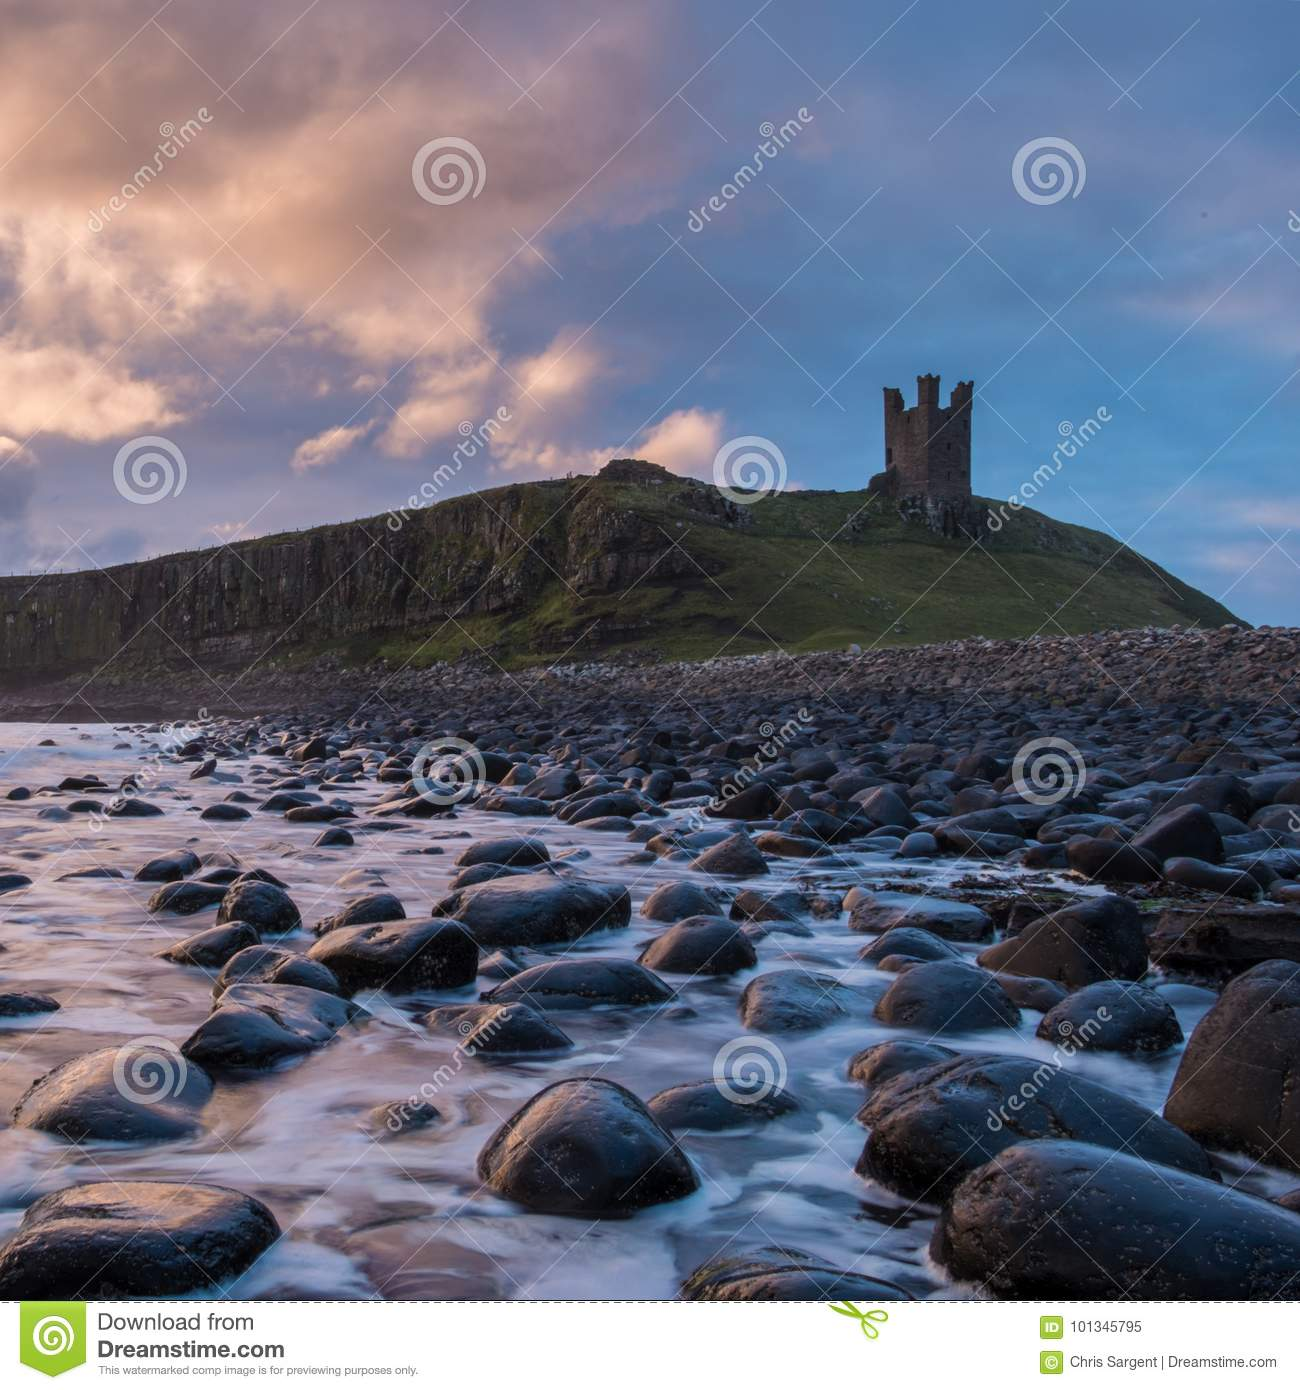 Dunstanburghkasteel in Northumberland